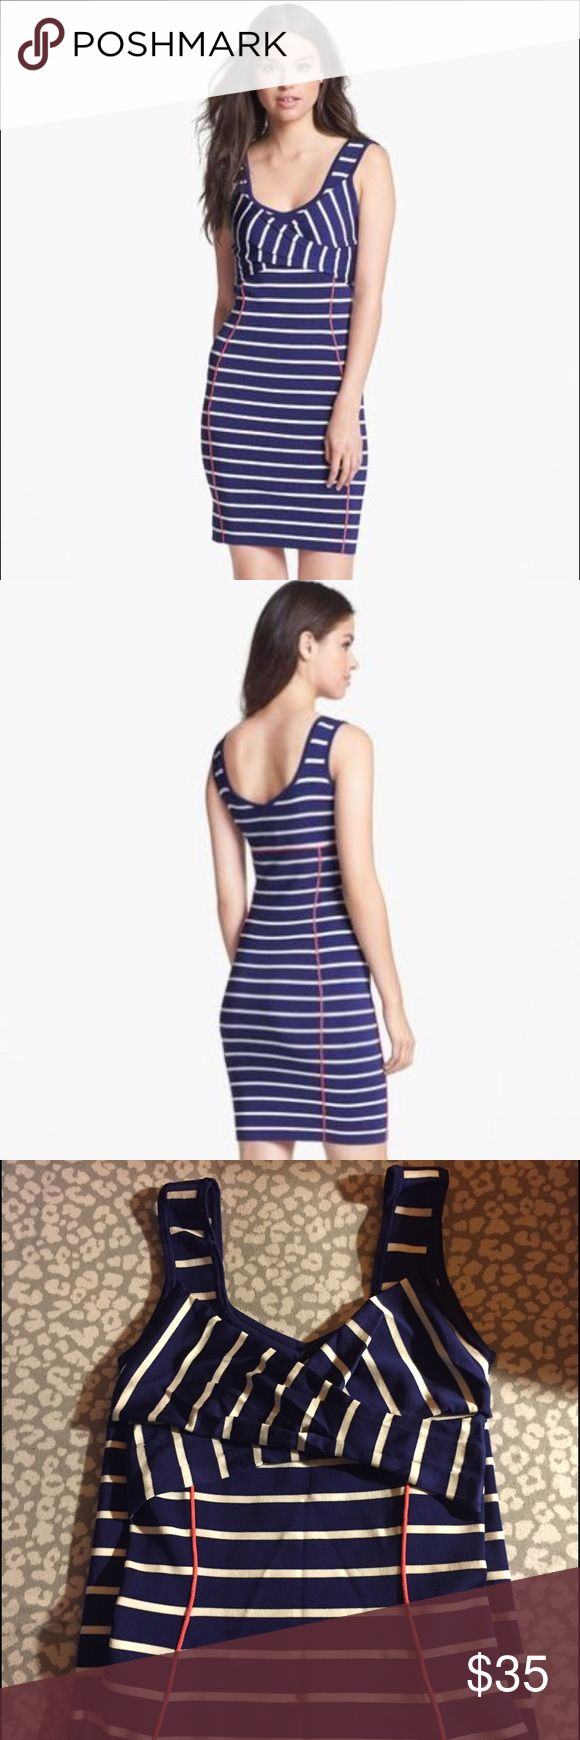 ⚓️Jessica Simpson Nautical BodyCon Dress⚓️ This bandage Nautical Jessica Simpson dress will be sure to have you ready for summer. It hits the curves in all of the right spots. Material is good quality and dress is in fantastic condition! Dress is navy blue and white striped with red piping detail. Dress is XS but has stretch. Jessica Simpson Dresses